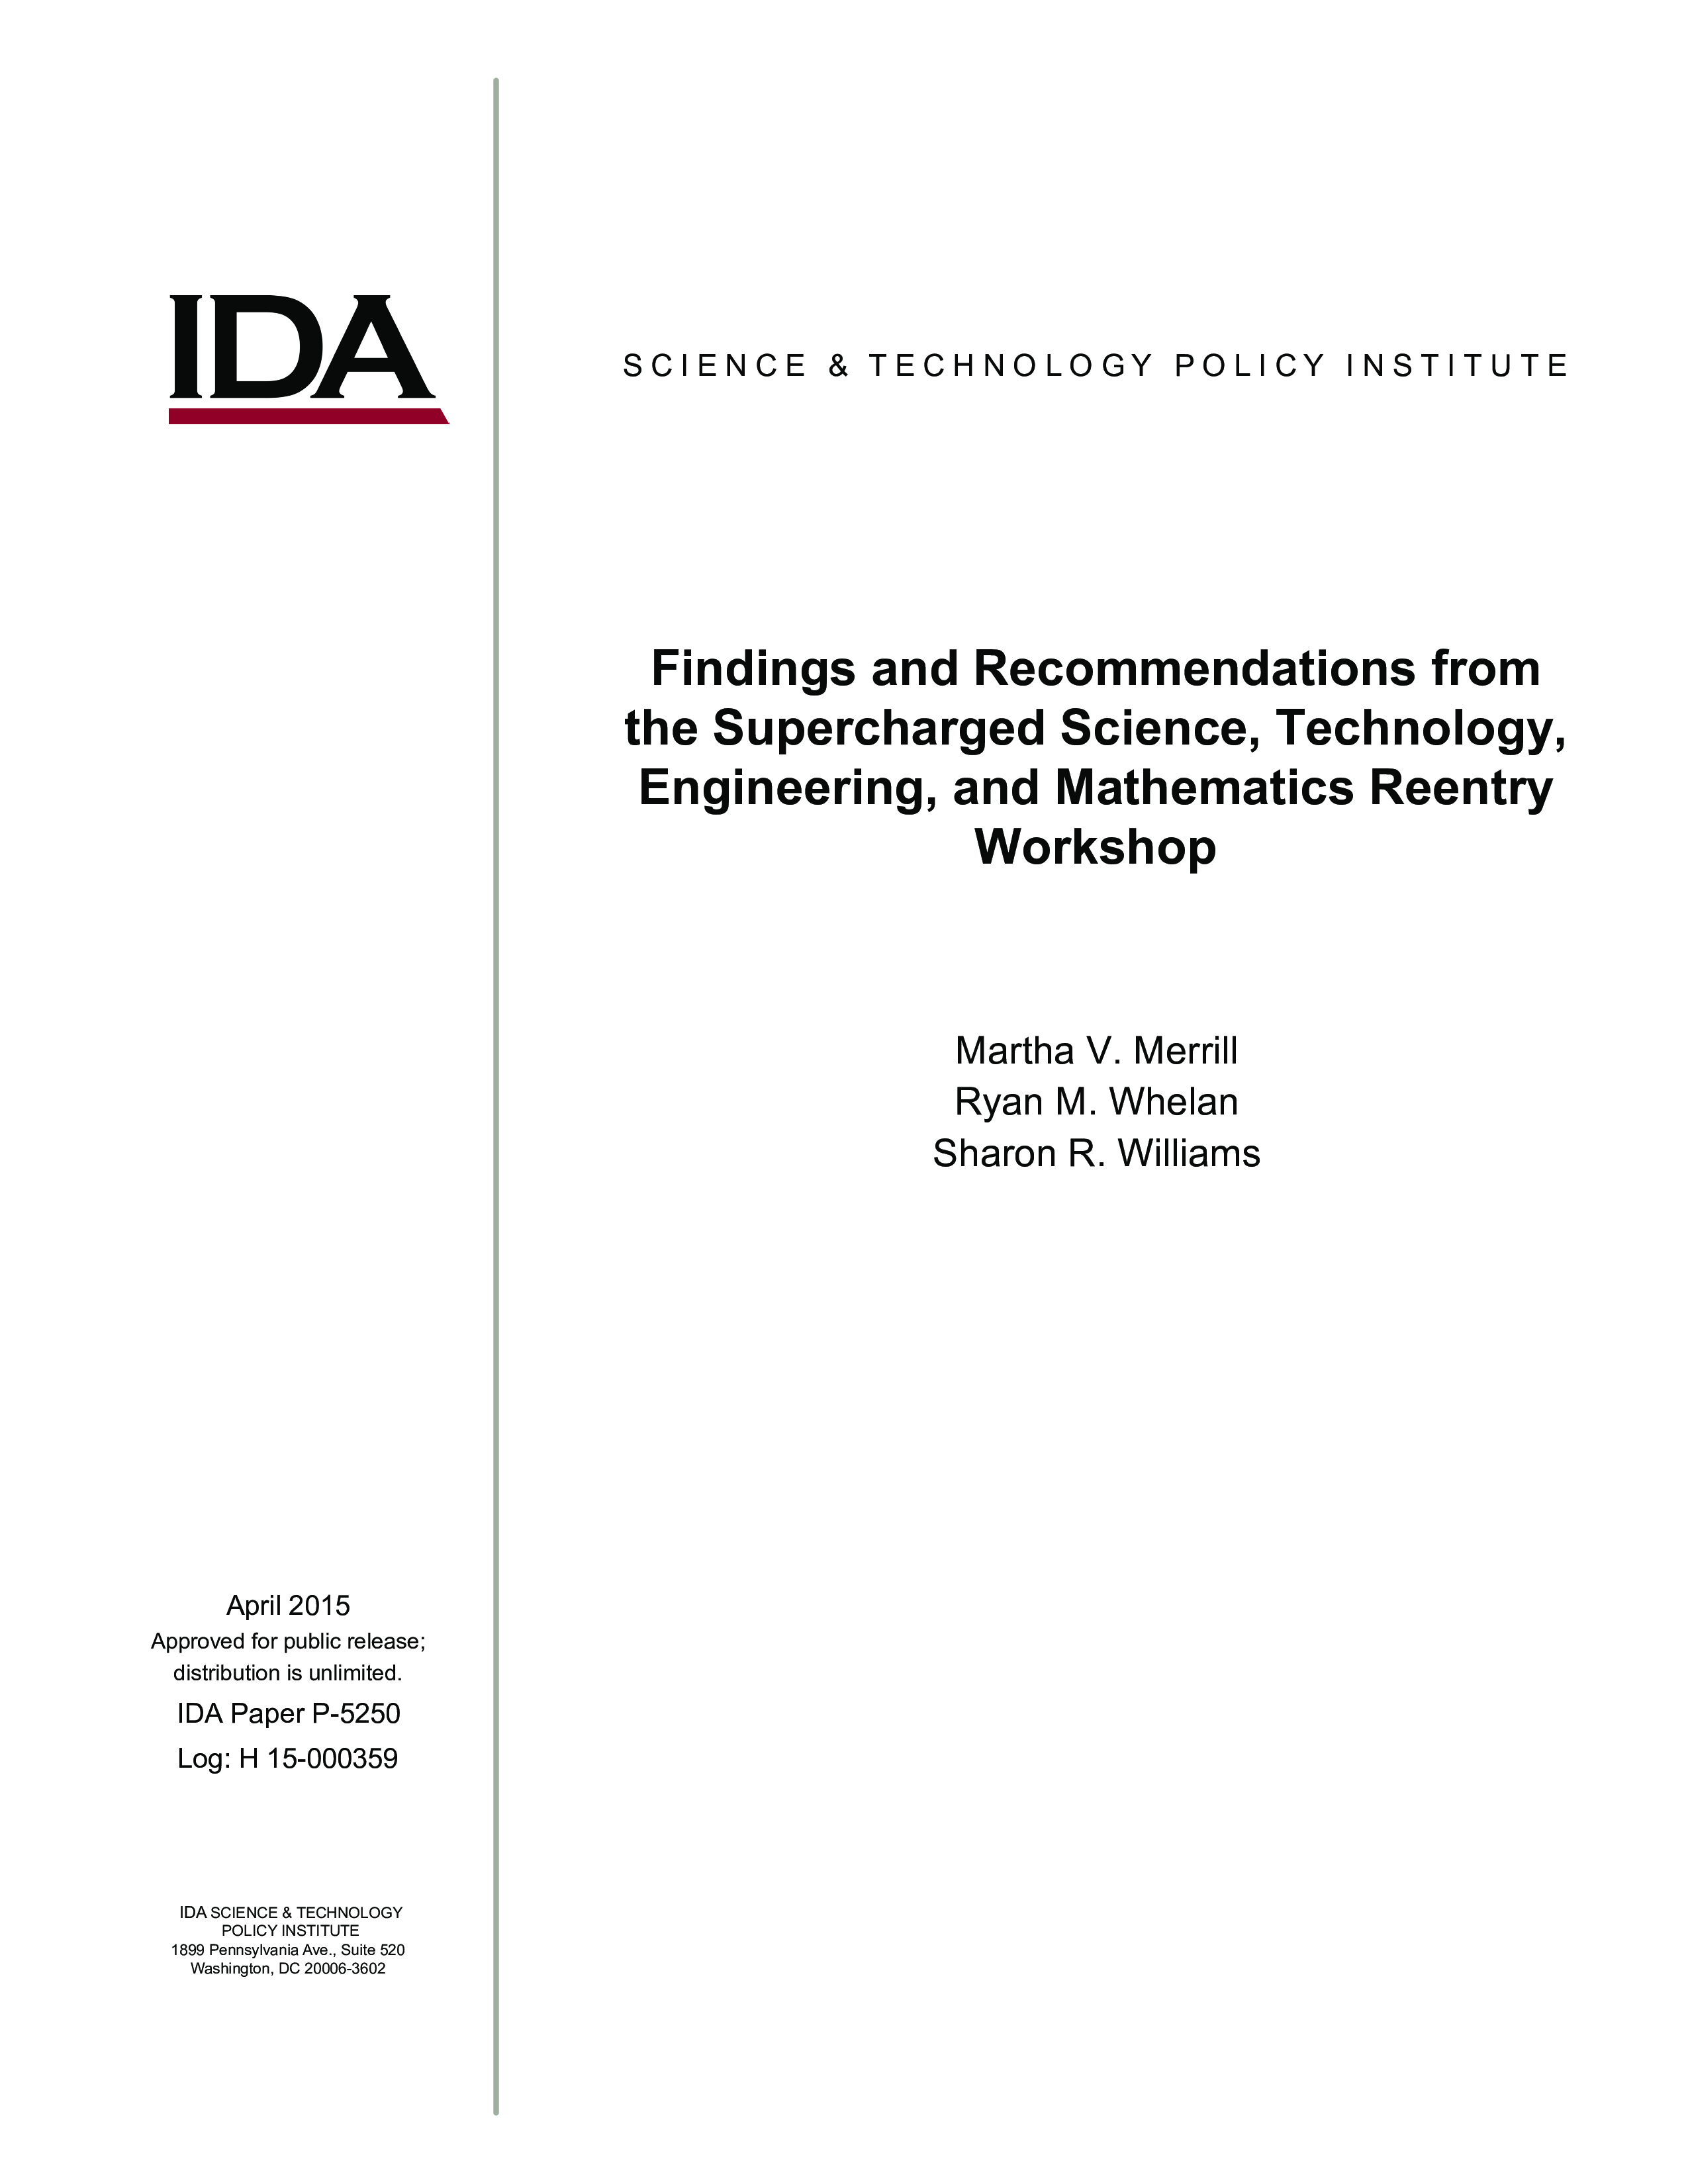 Findings and Recommendations from the Supercharged Science, Technology, Engineering, and Mathematics Reentry Workshop